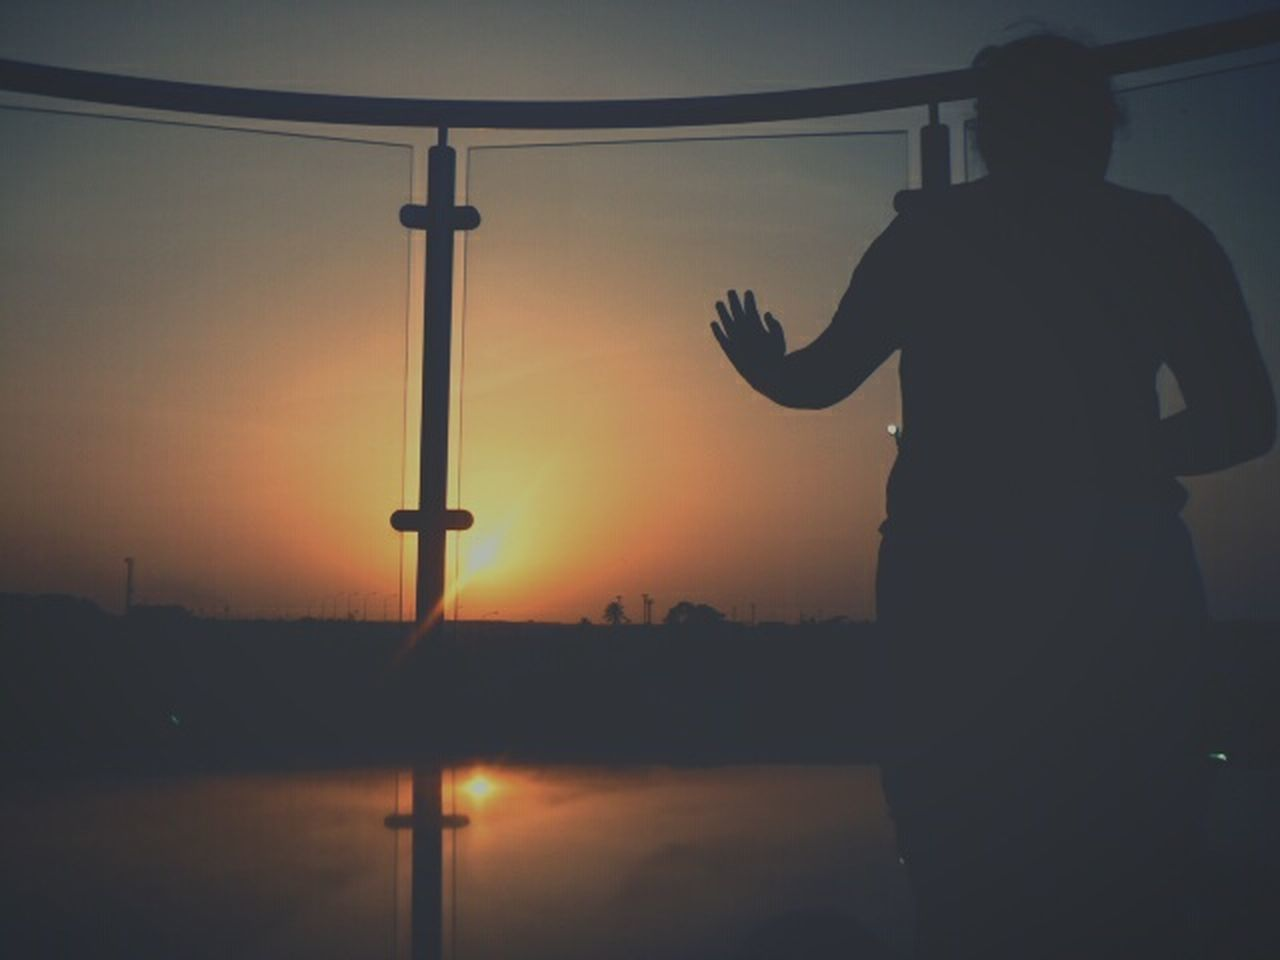 sunset, silhouette, real people, orange color, sky, standing, one person, lifestyles, outdoors, men, technology, nature, beauty in nature, water, people